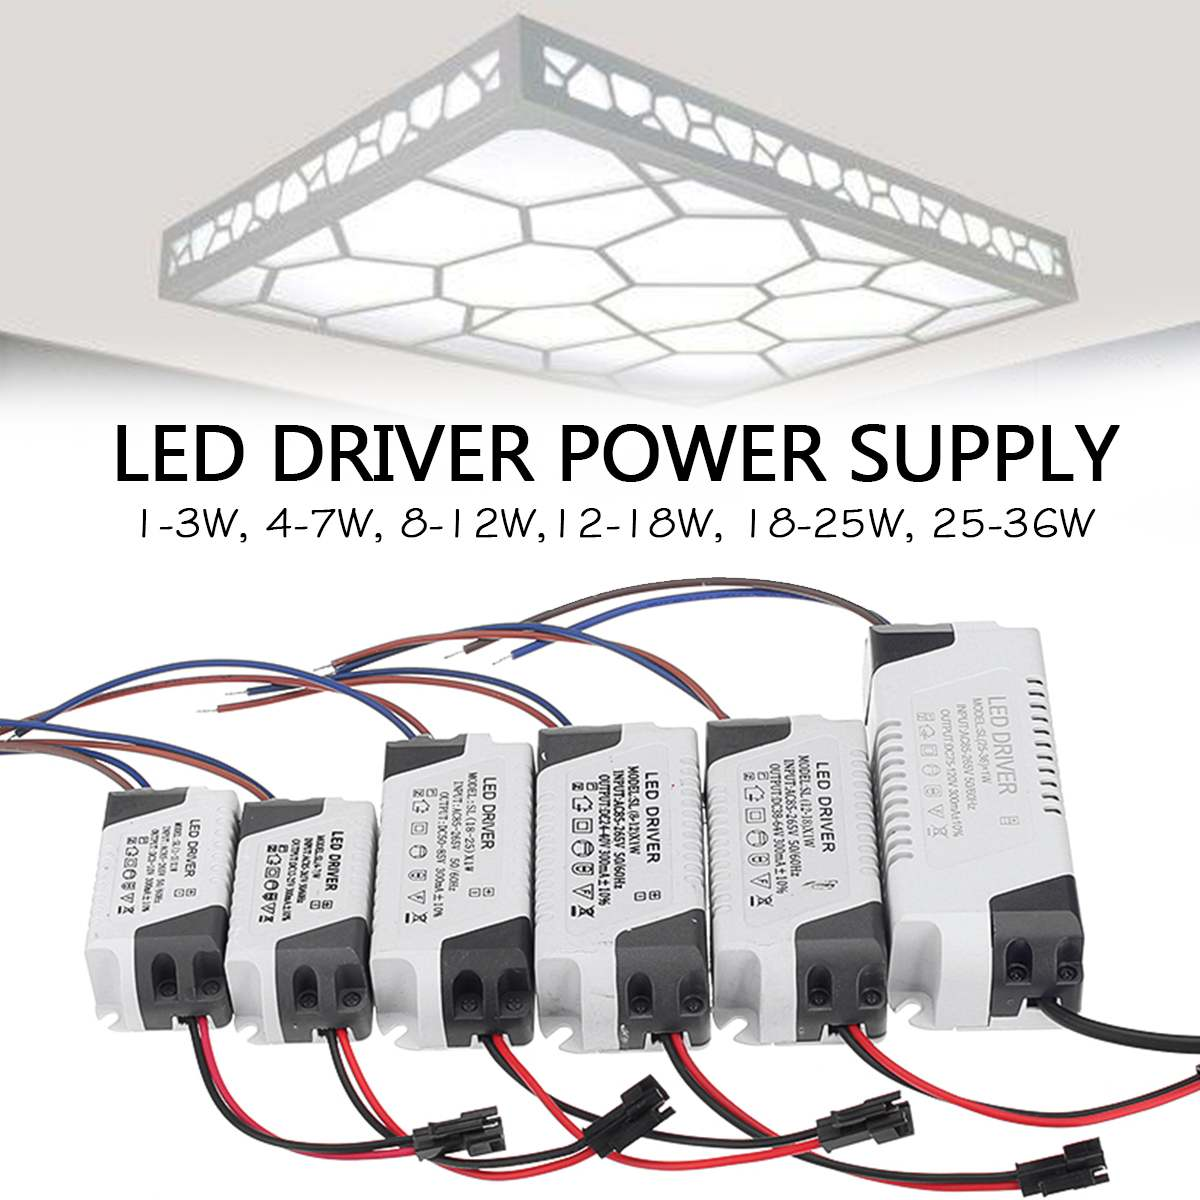 LED Constant Driver 1-3W 4-7W 8-12W 12-18W 18-25W 25-36W Power Supply Light Transformerss for LED Downlight Lighting AC85-265V image